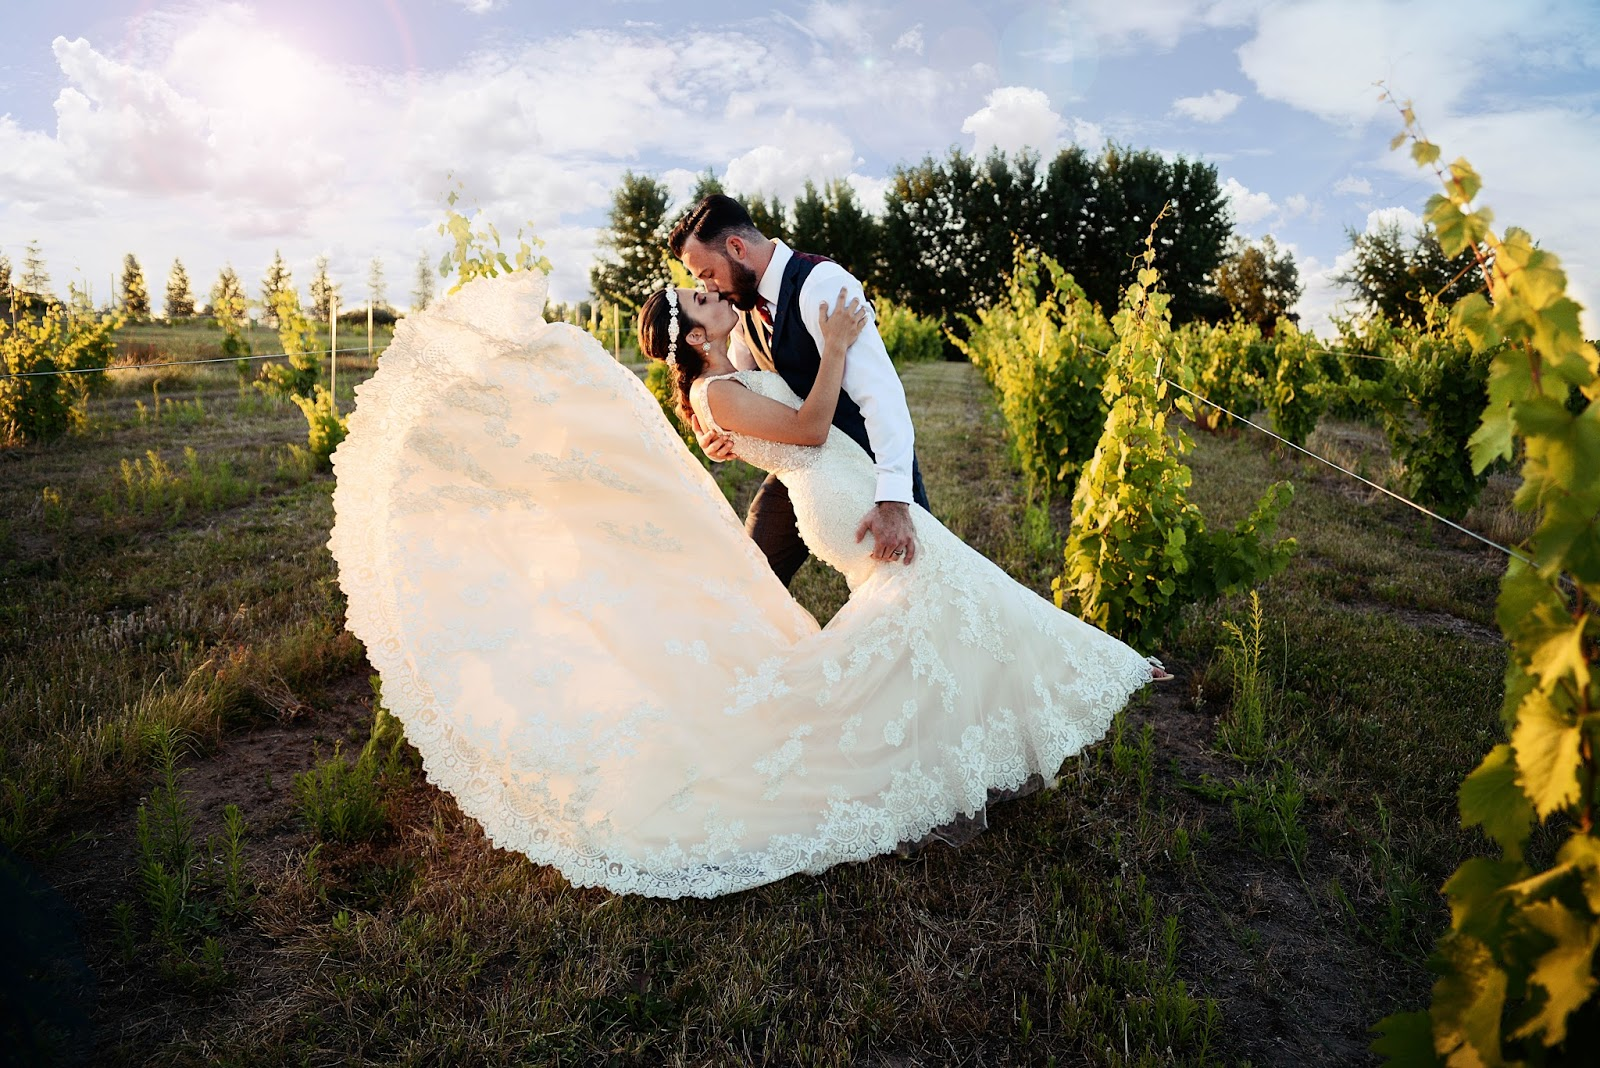 Featured Vendor: Julie Dawn Photography